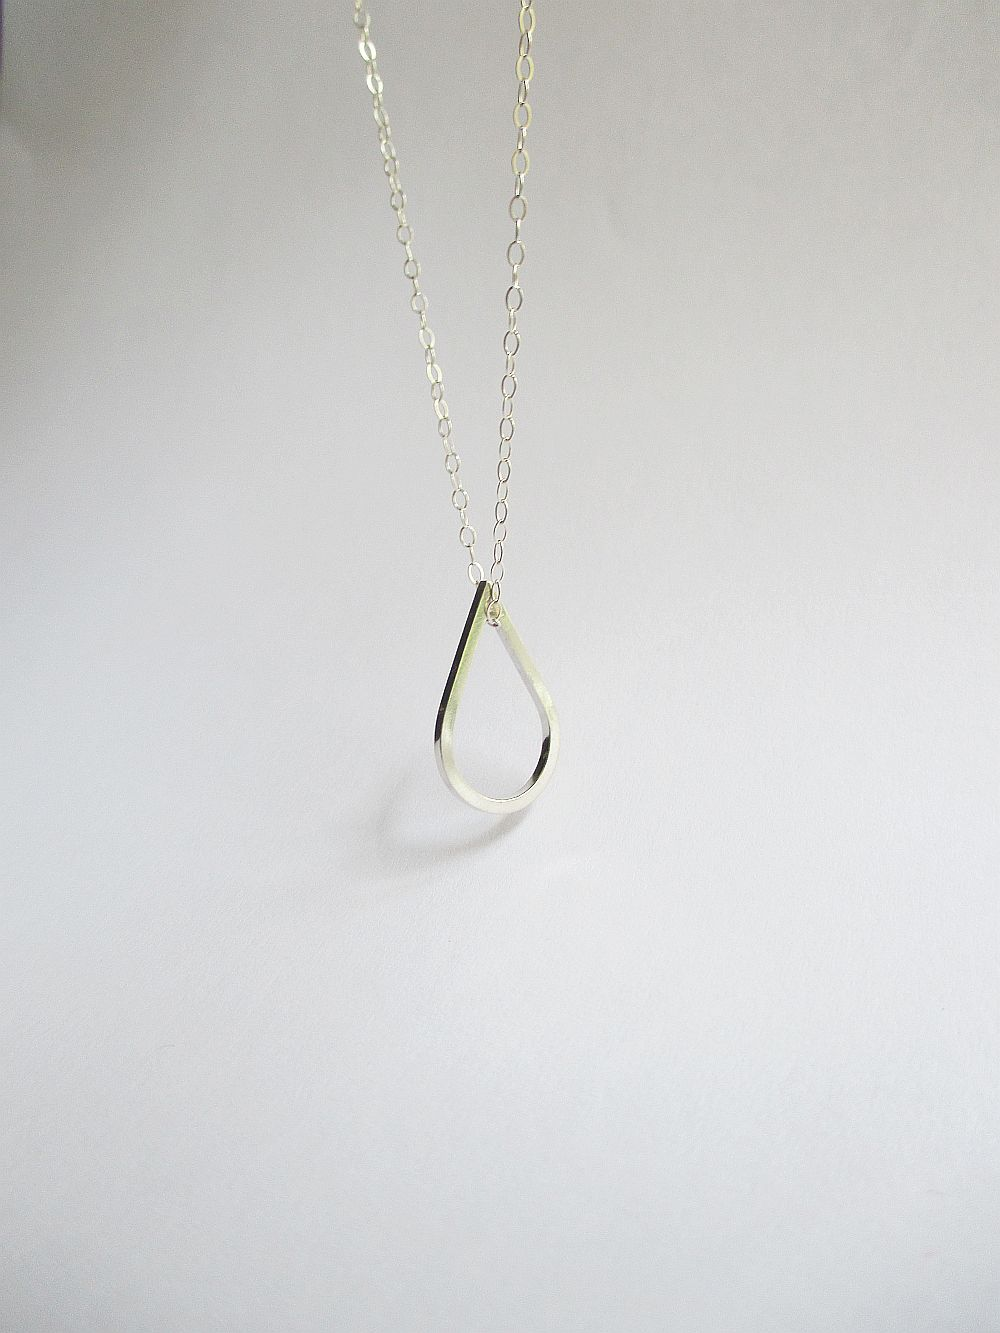 Teardrop Necklace, Silver or Gold